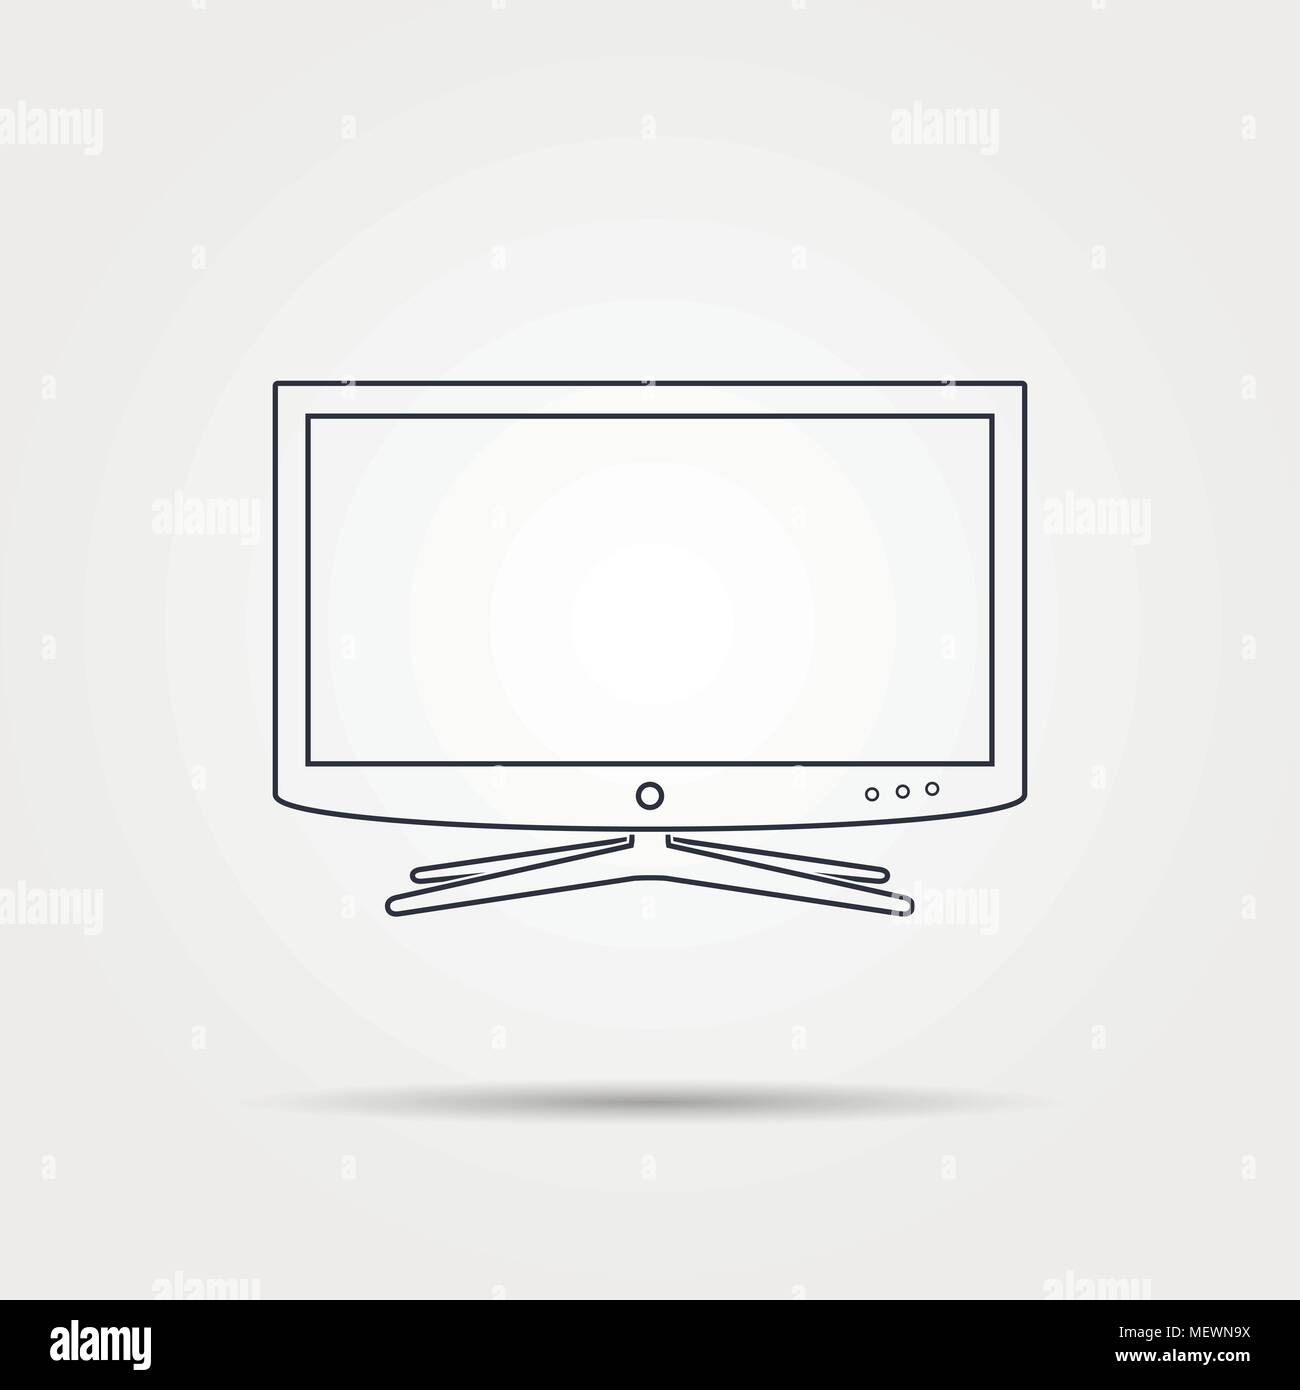 Smart Tv Diagram Drawings Reinvent Your Wiring Samsung Line Icon Linear Vector Illustration Stock Art Rh Alamy Com For